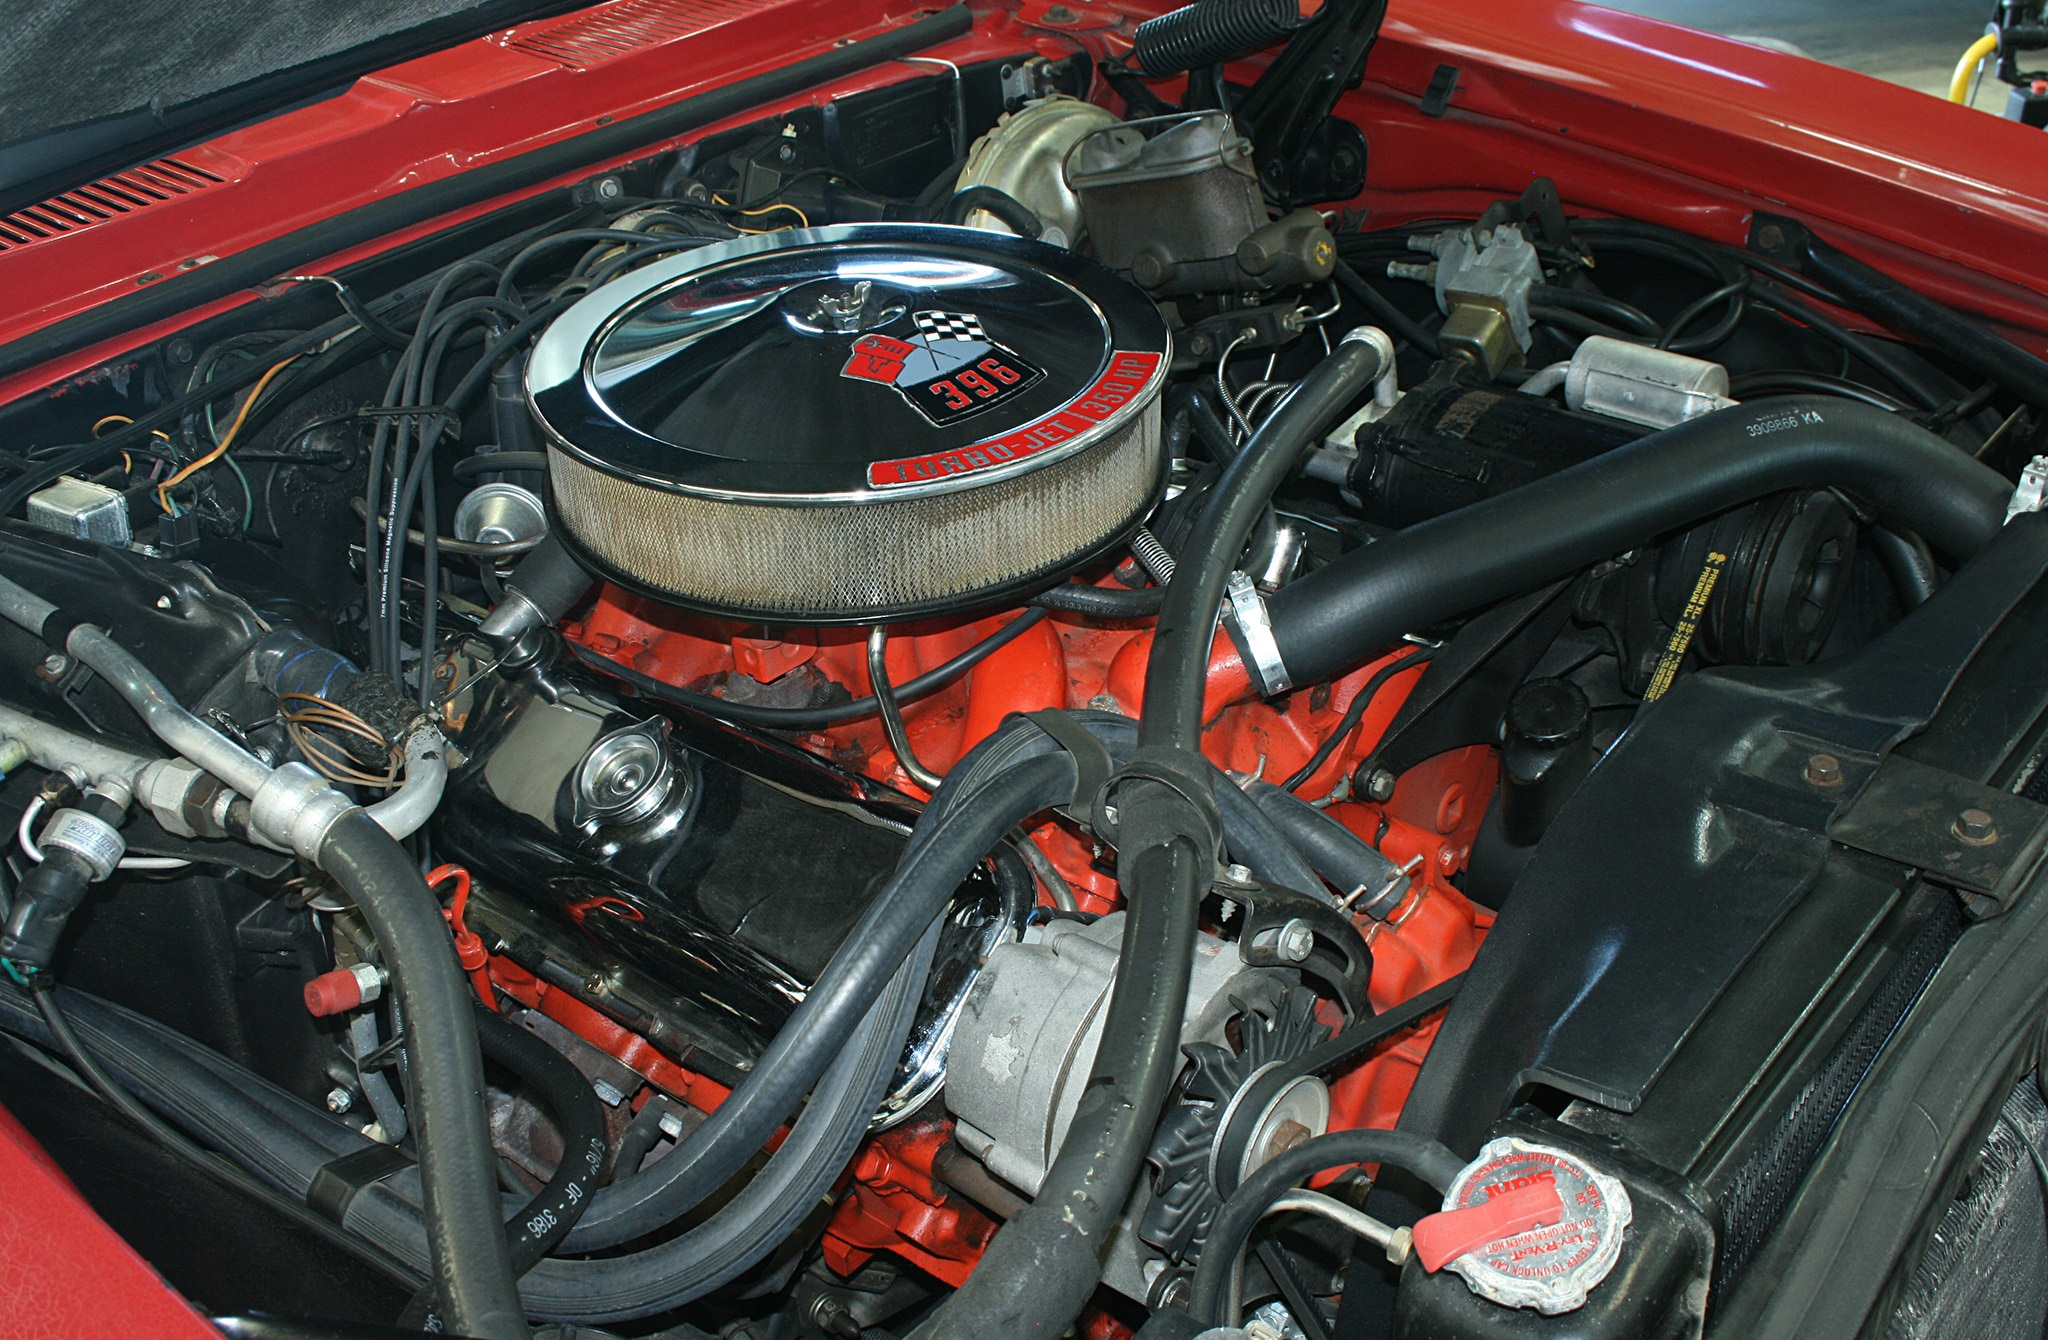 1968 Chevrolet Camaro Ss 396 Turbo Jet Engine Wide